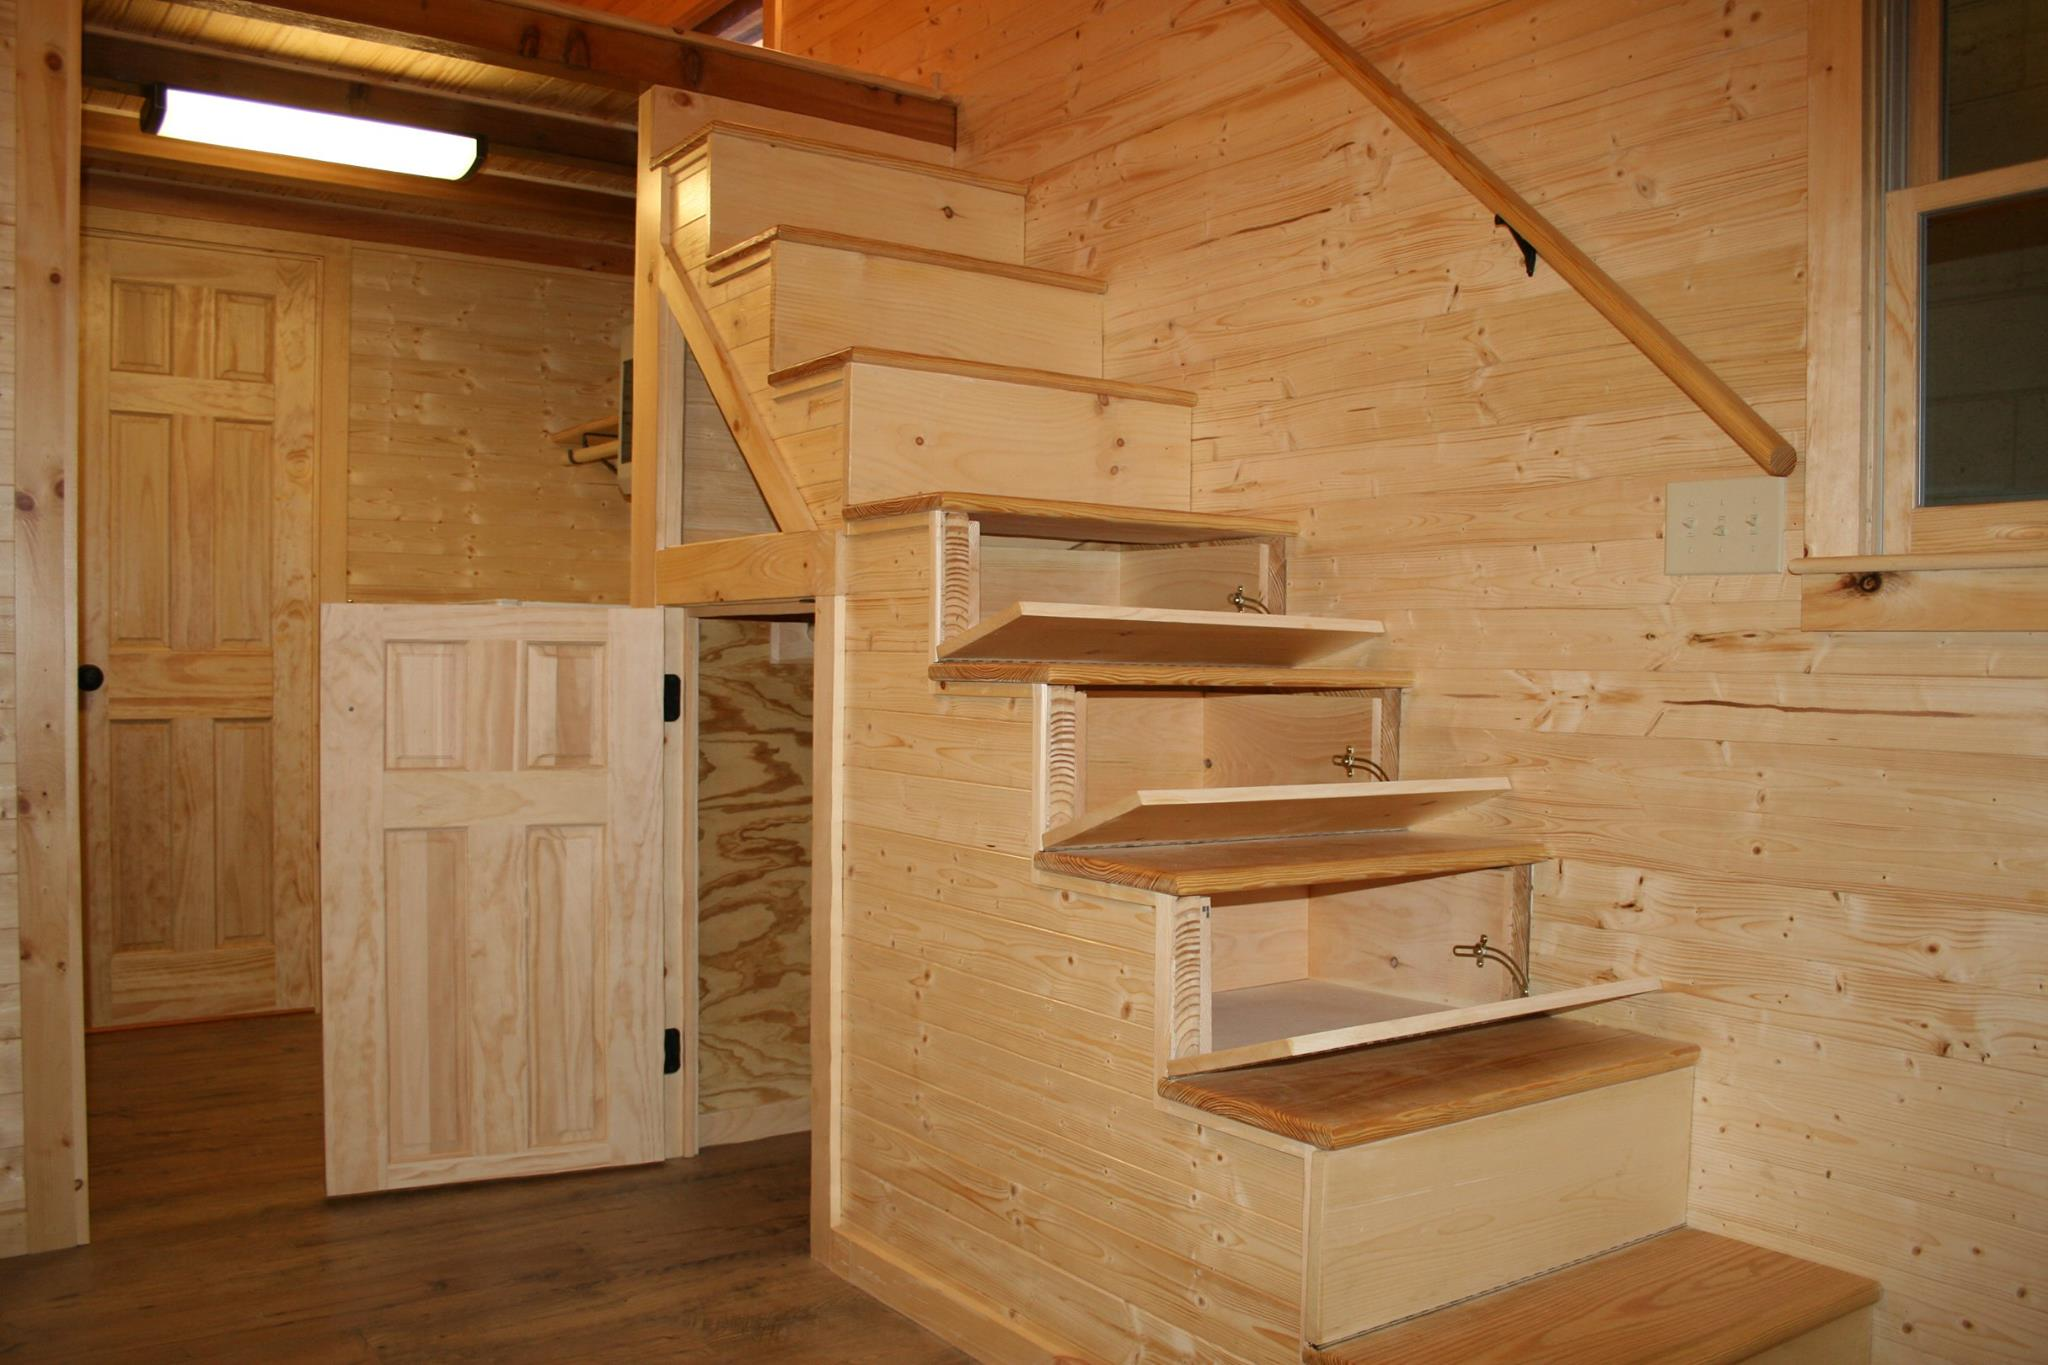 Stairs showing storage.